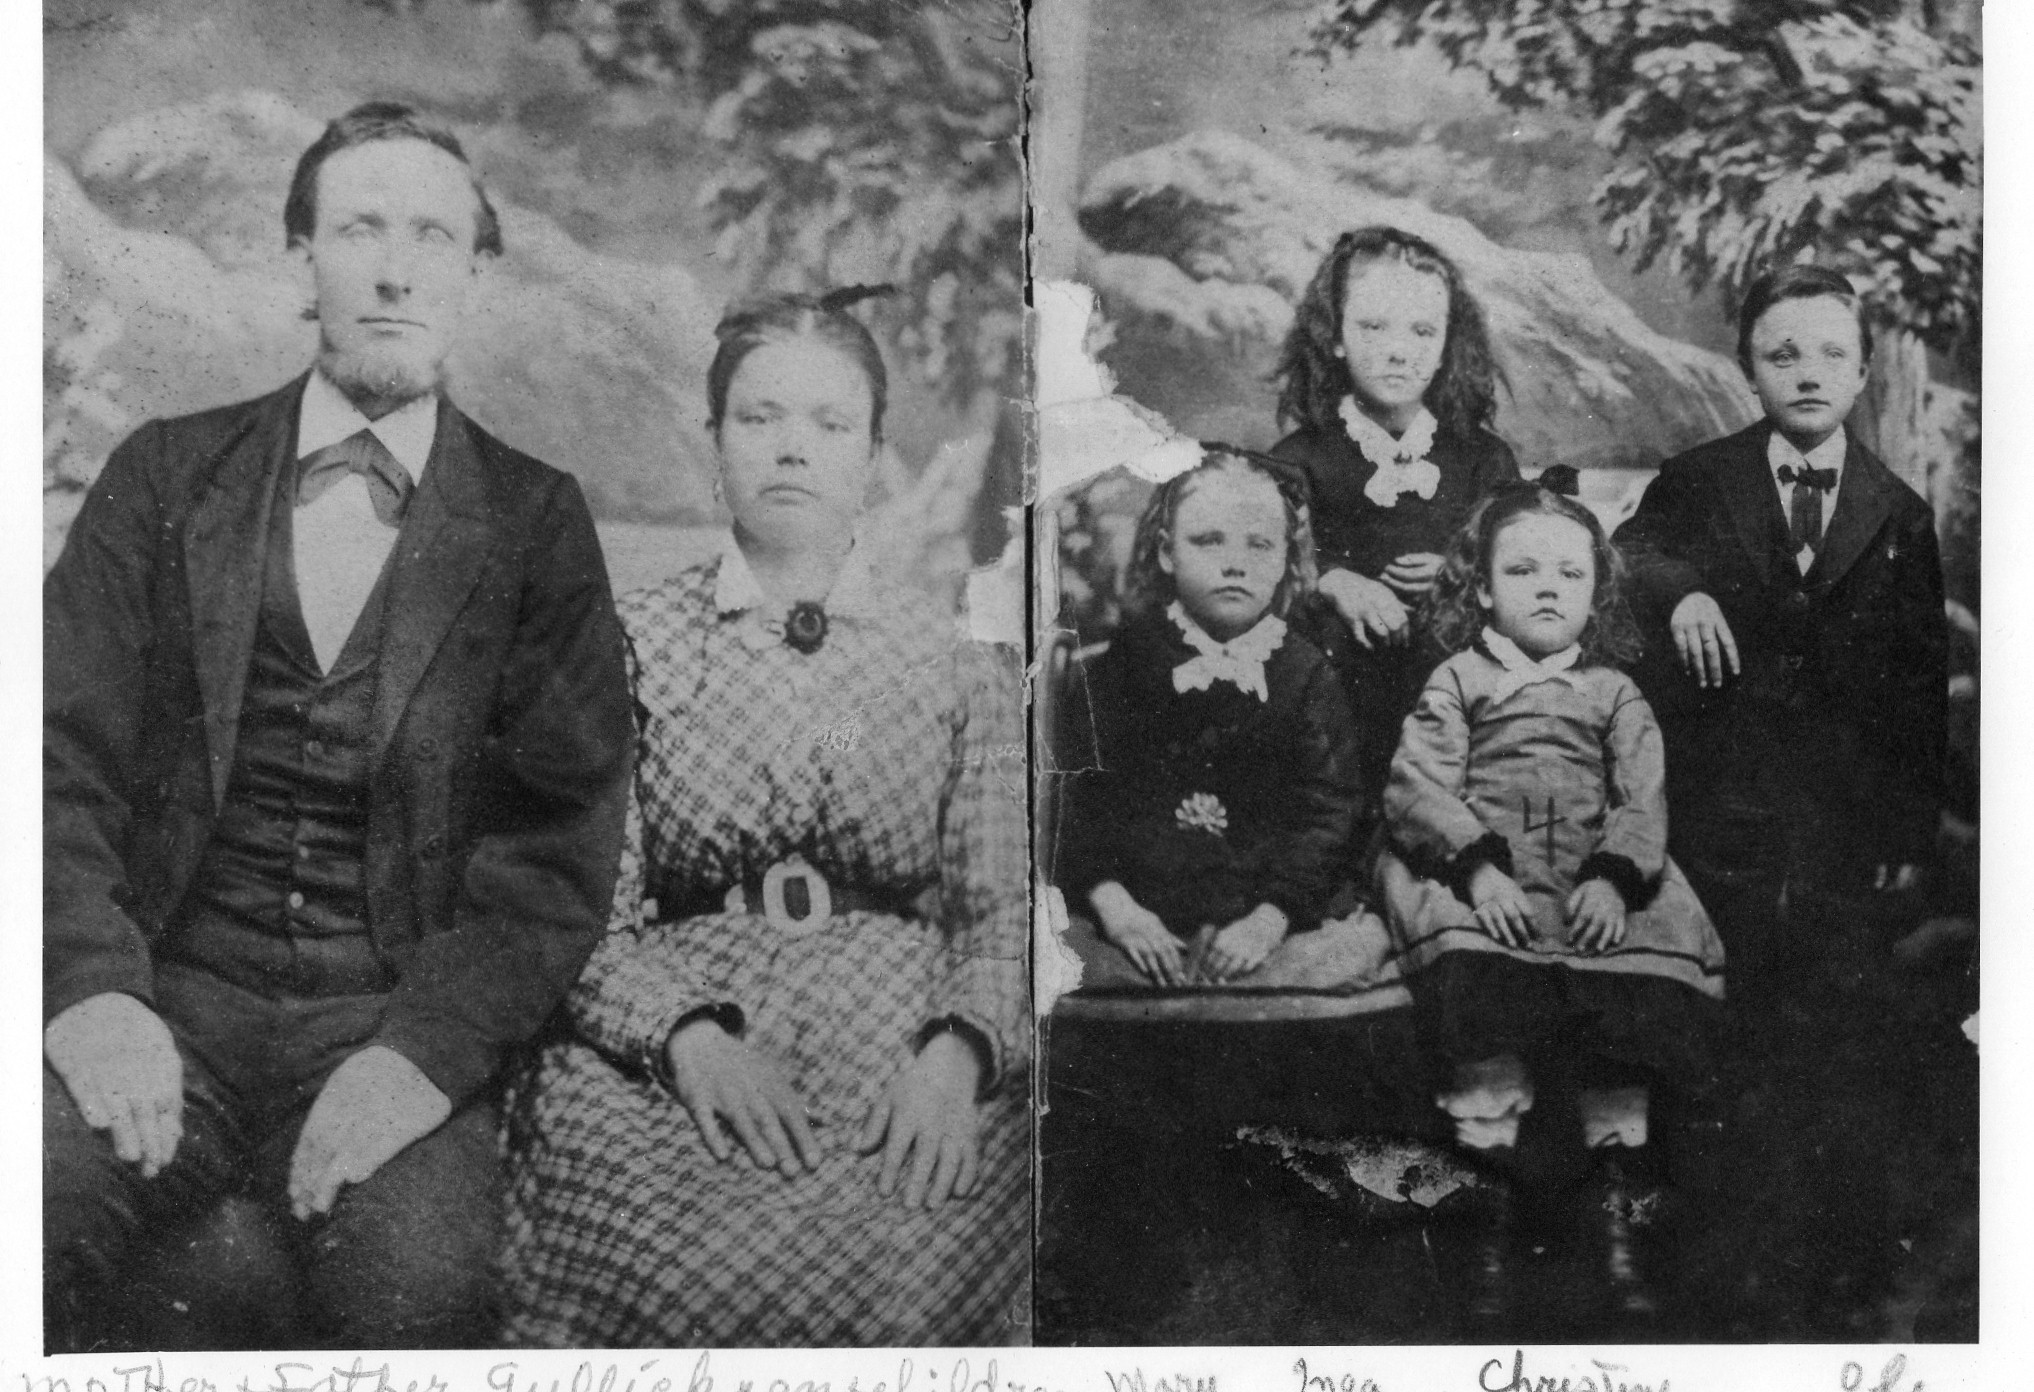 Gulicksons.Christine (Nelson) Gullickson, lower right